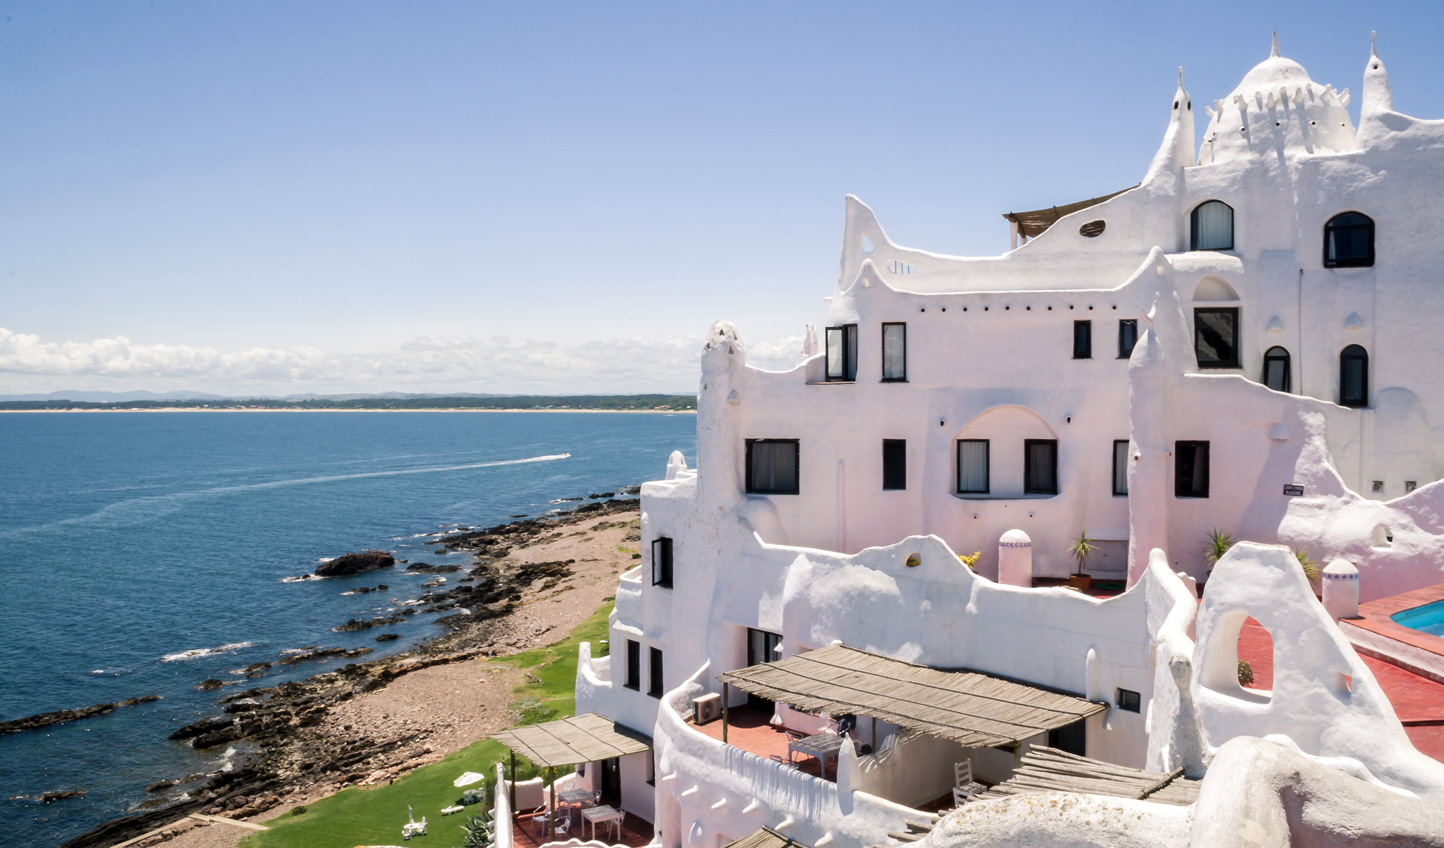 Visit the pretty Casapueblo, 'The Uruguayan Greece'